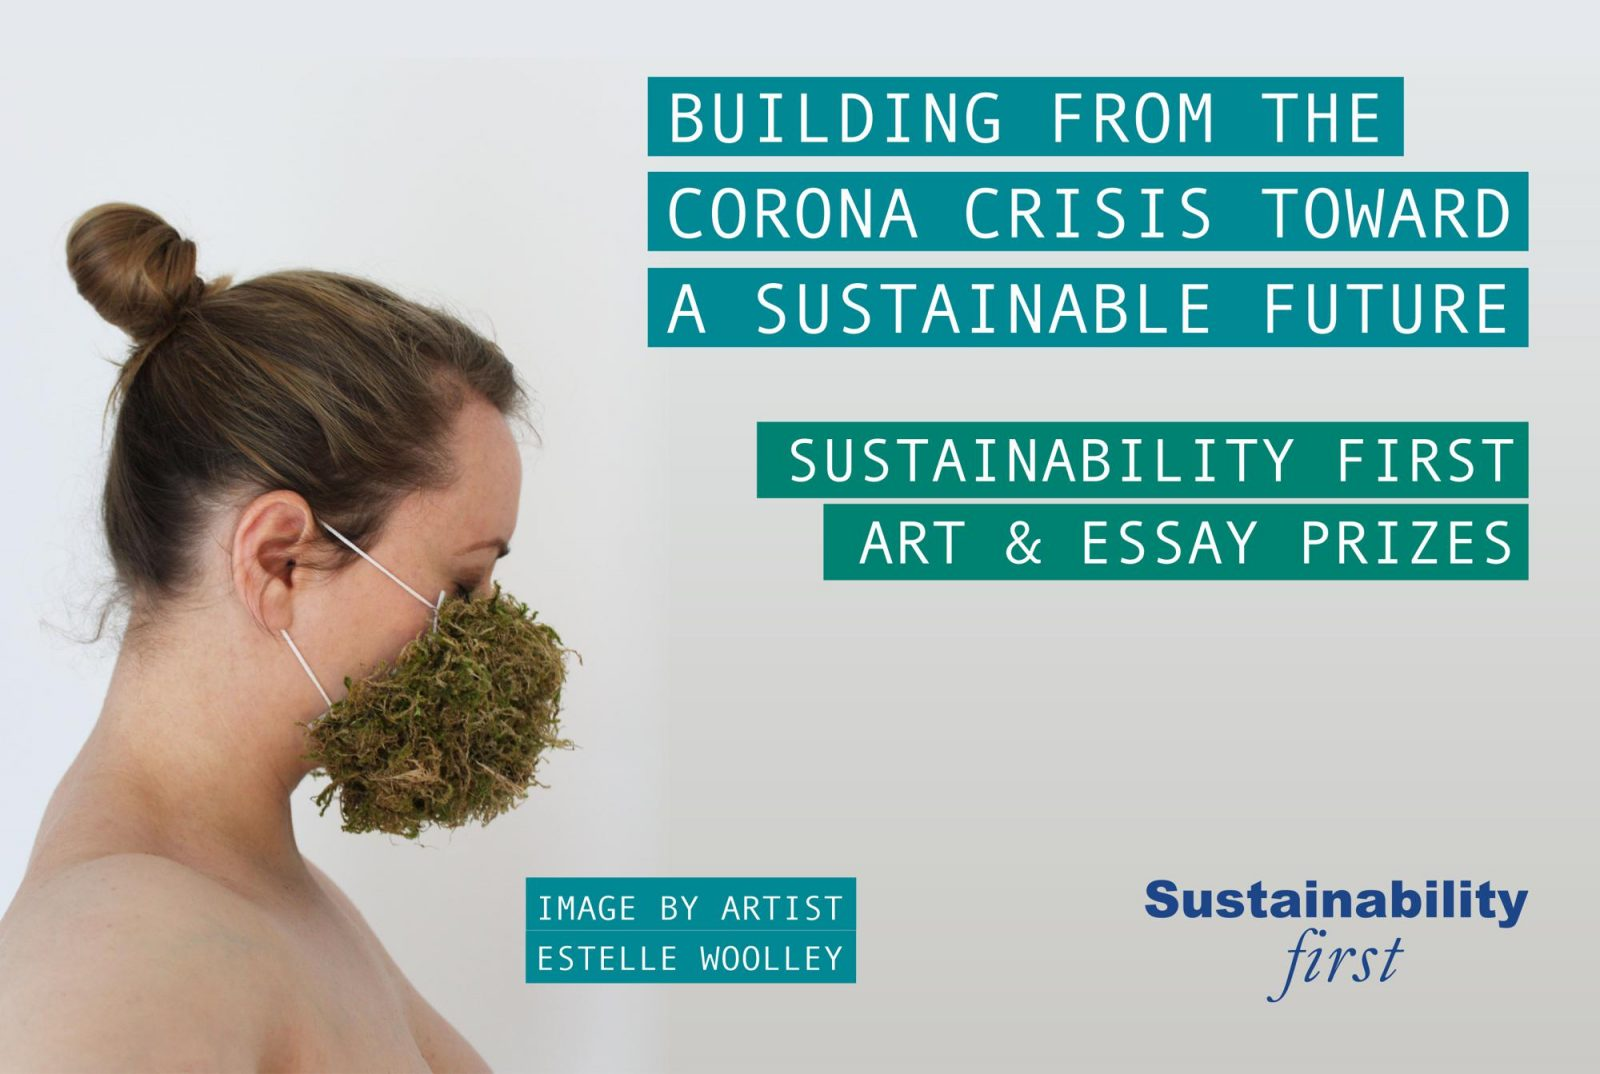 How do we build from the current corona crisis towards a more sustainable future?